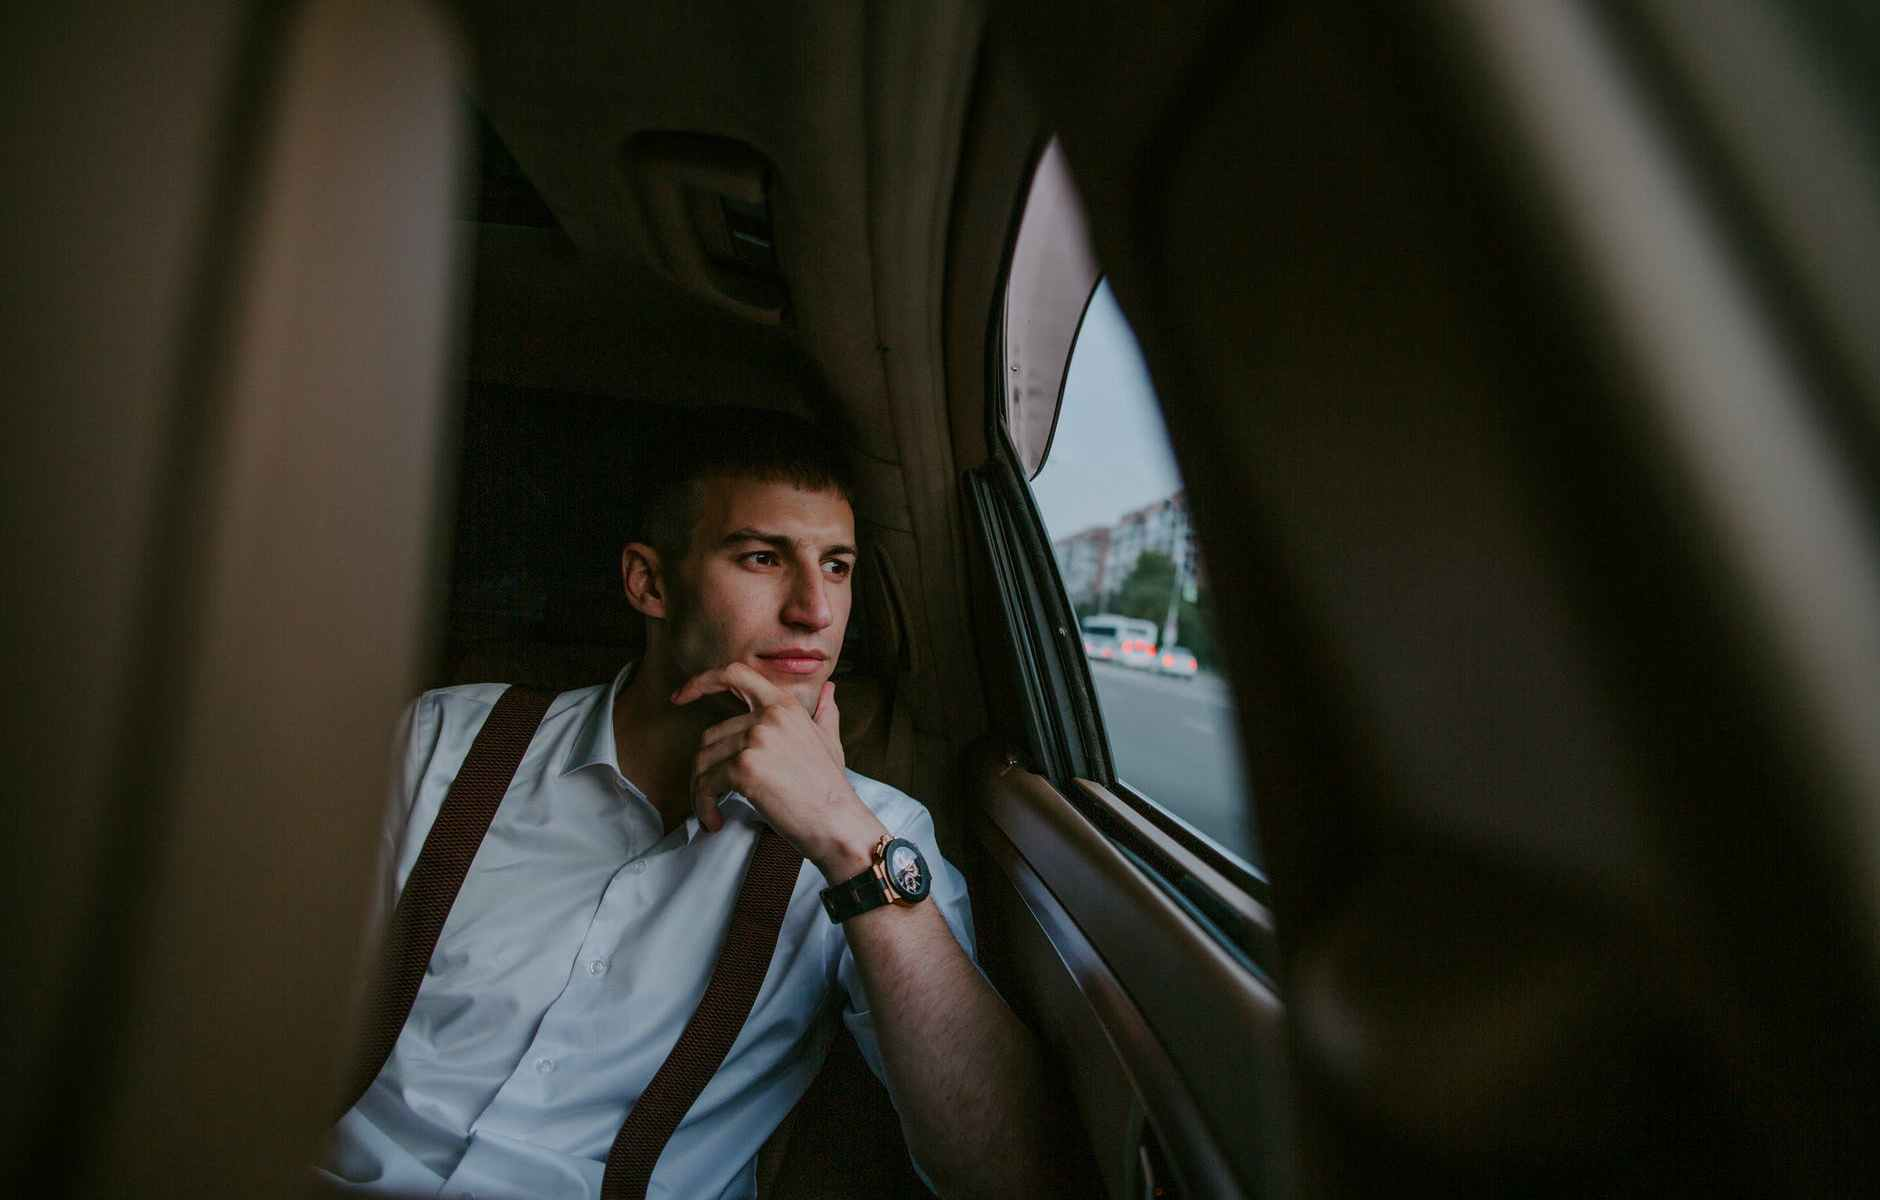 man sitting in car with leather interior